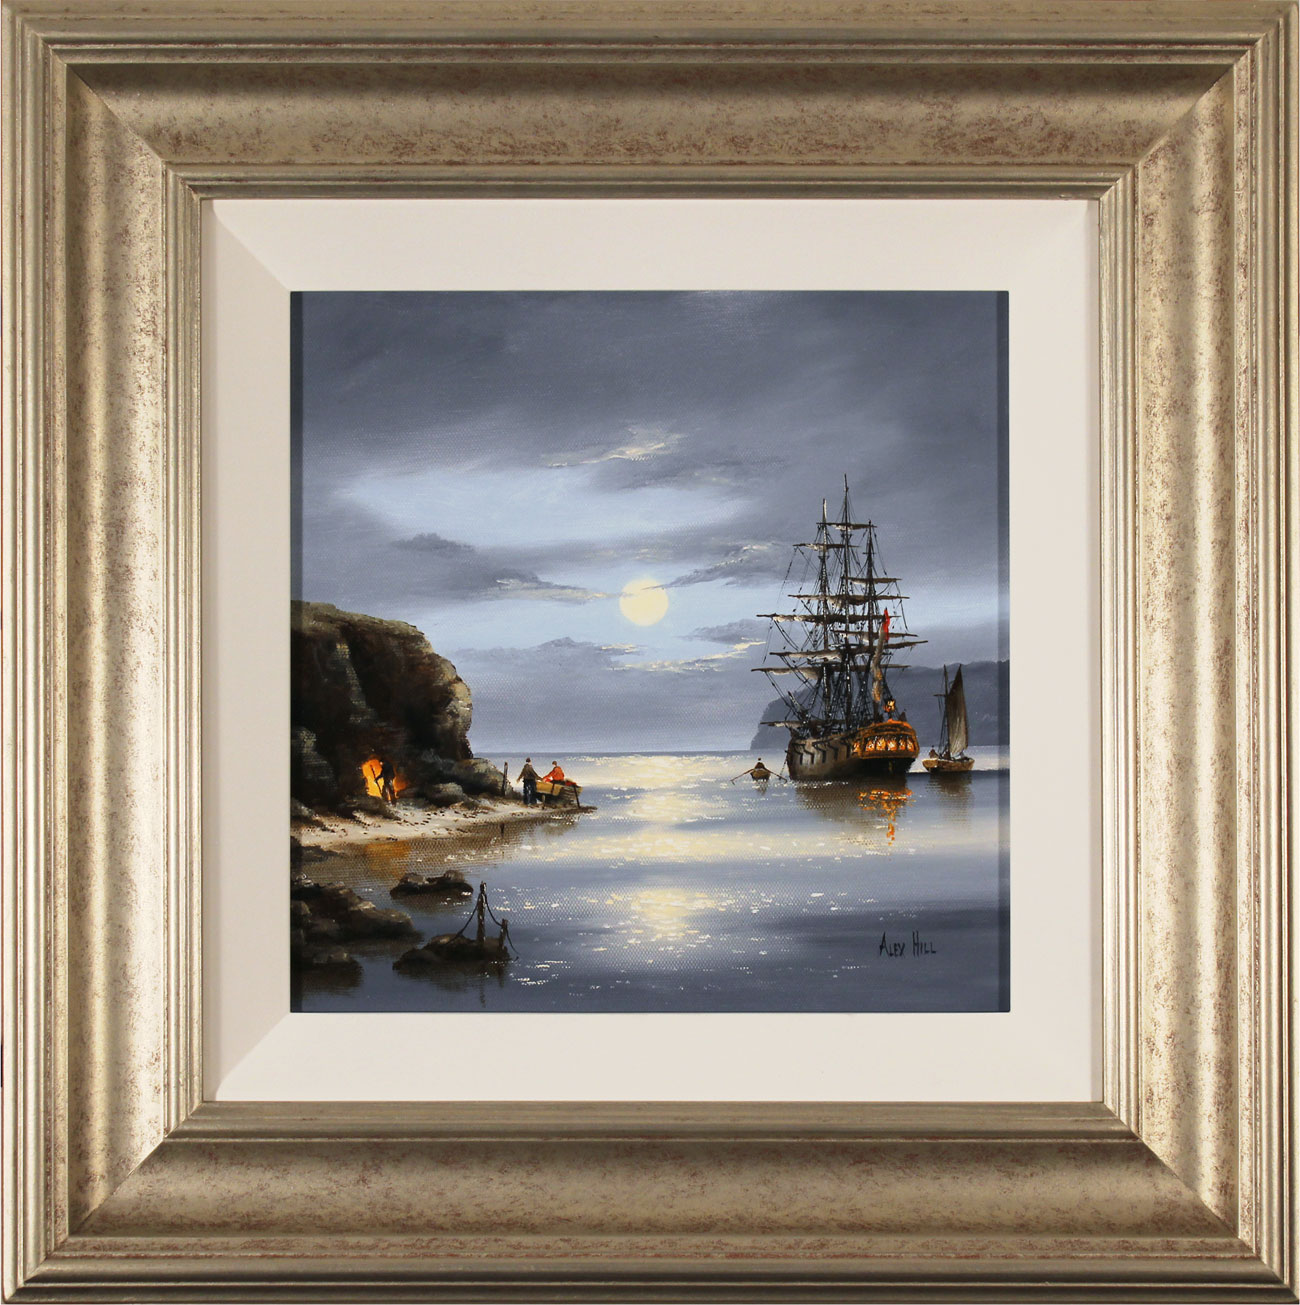 Alex Hill, Original oil painting on canvas, Moonlight Cove Click to enlarge